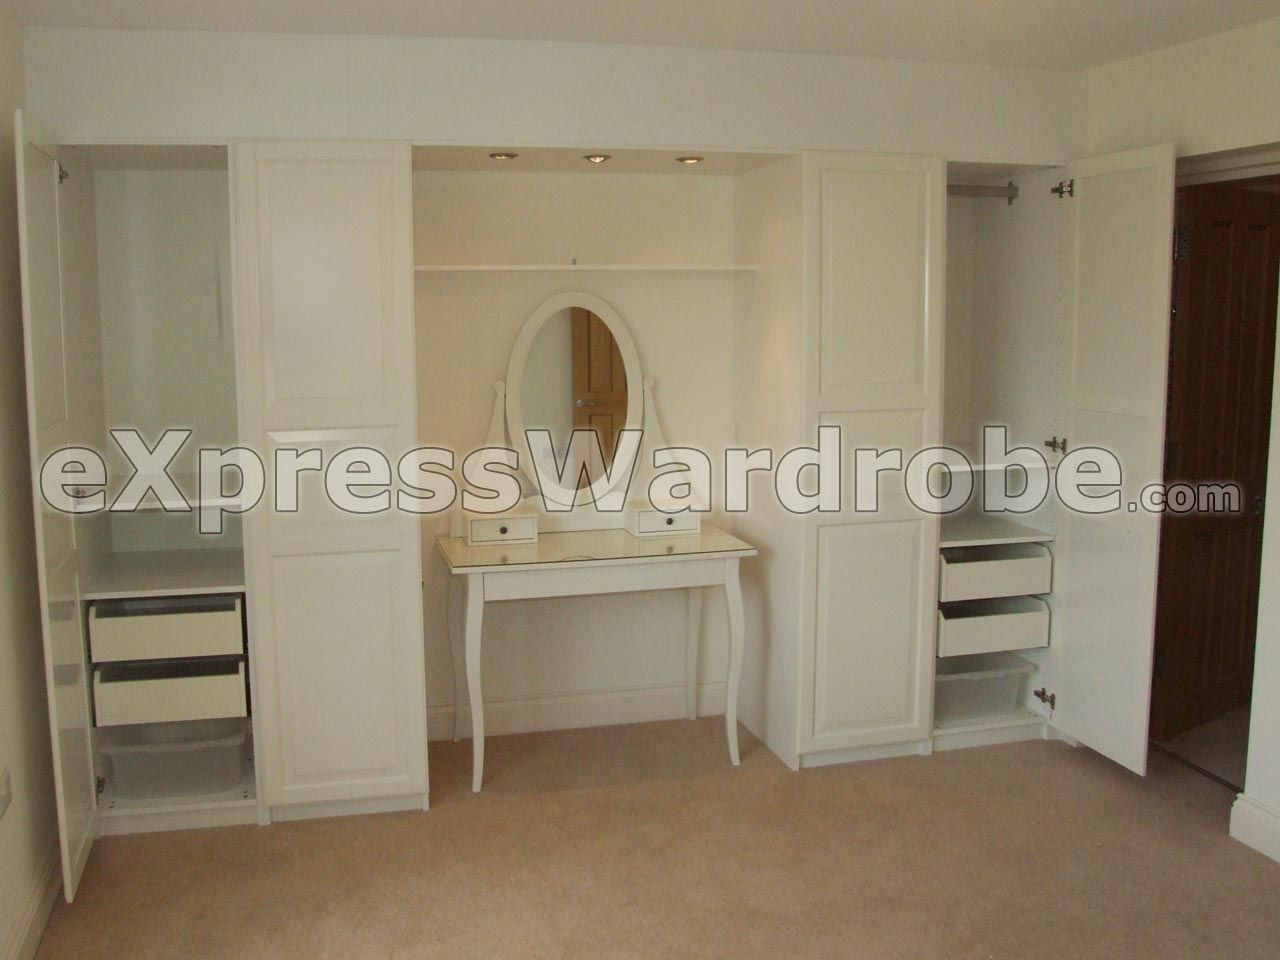 Cheap Fitted Wardrobes Solution, Top made-to-measure bespoke fitted bedroom  design and installation service in London areas.